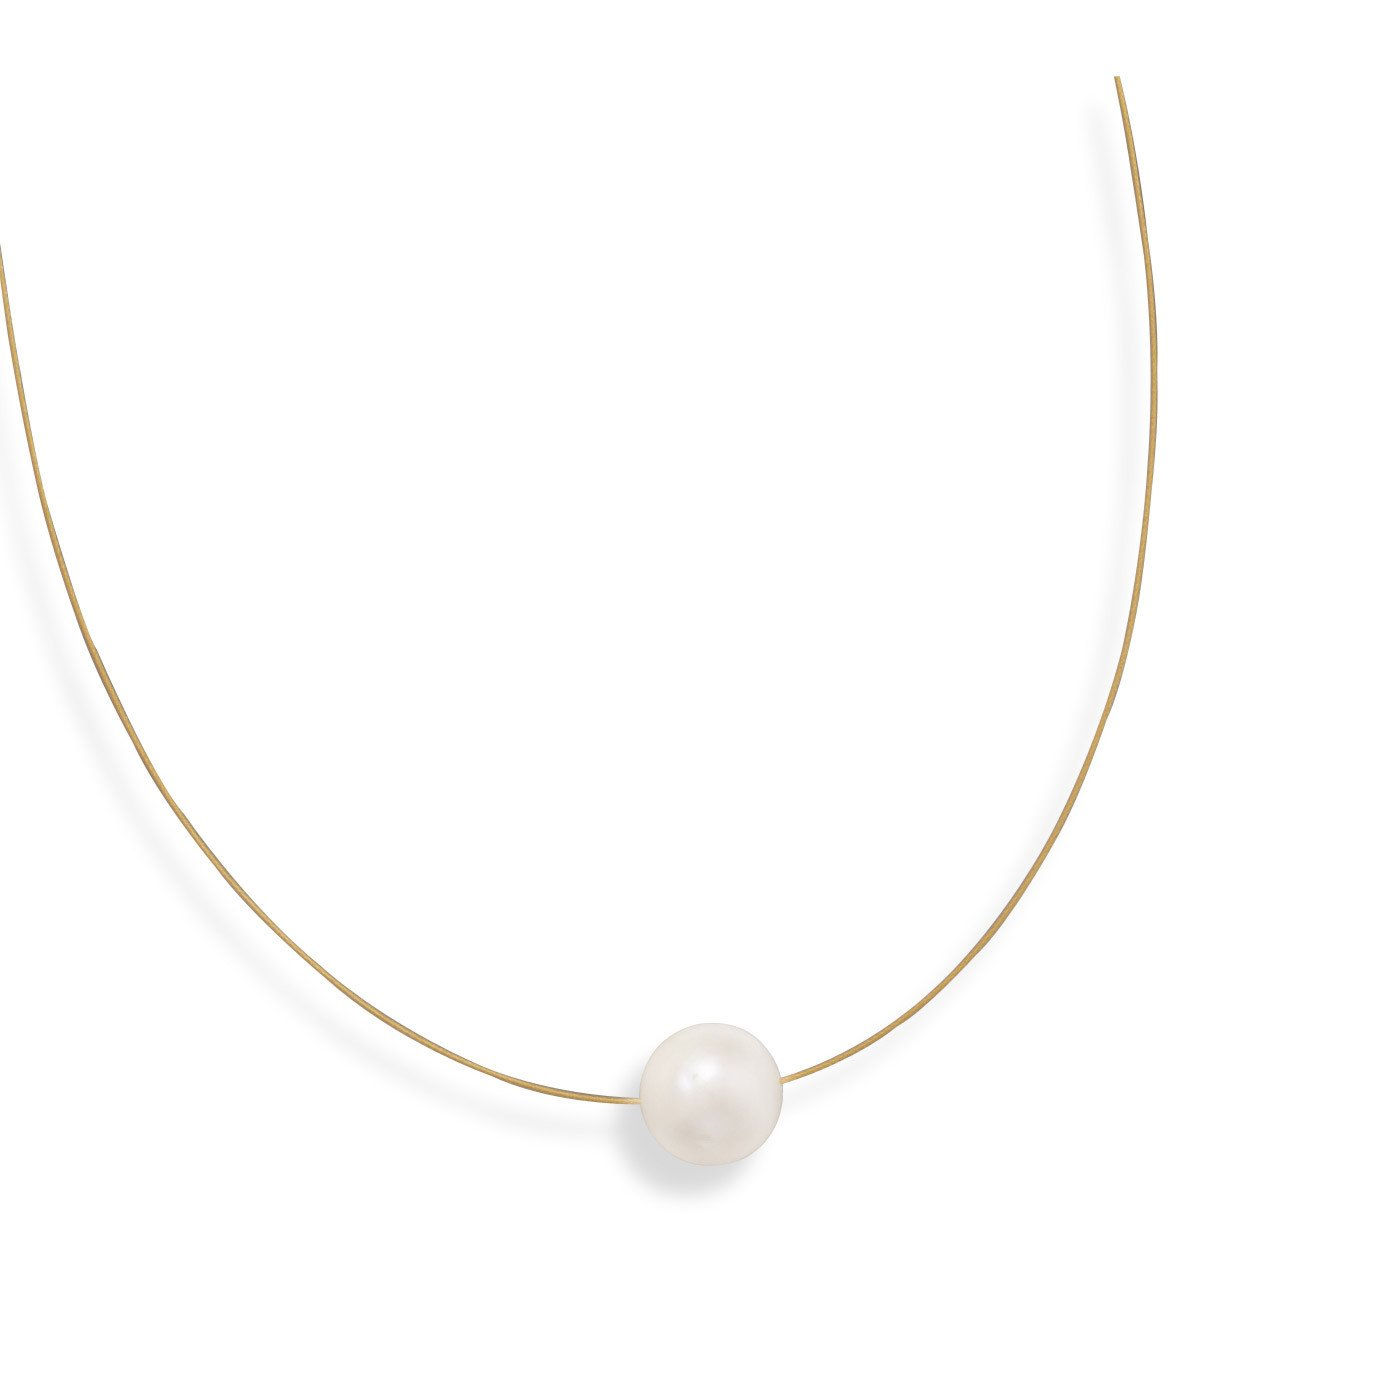 16″ 24 Karat Gold Plated Necklace with Cultured Freshwater Pearl